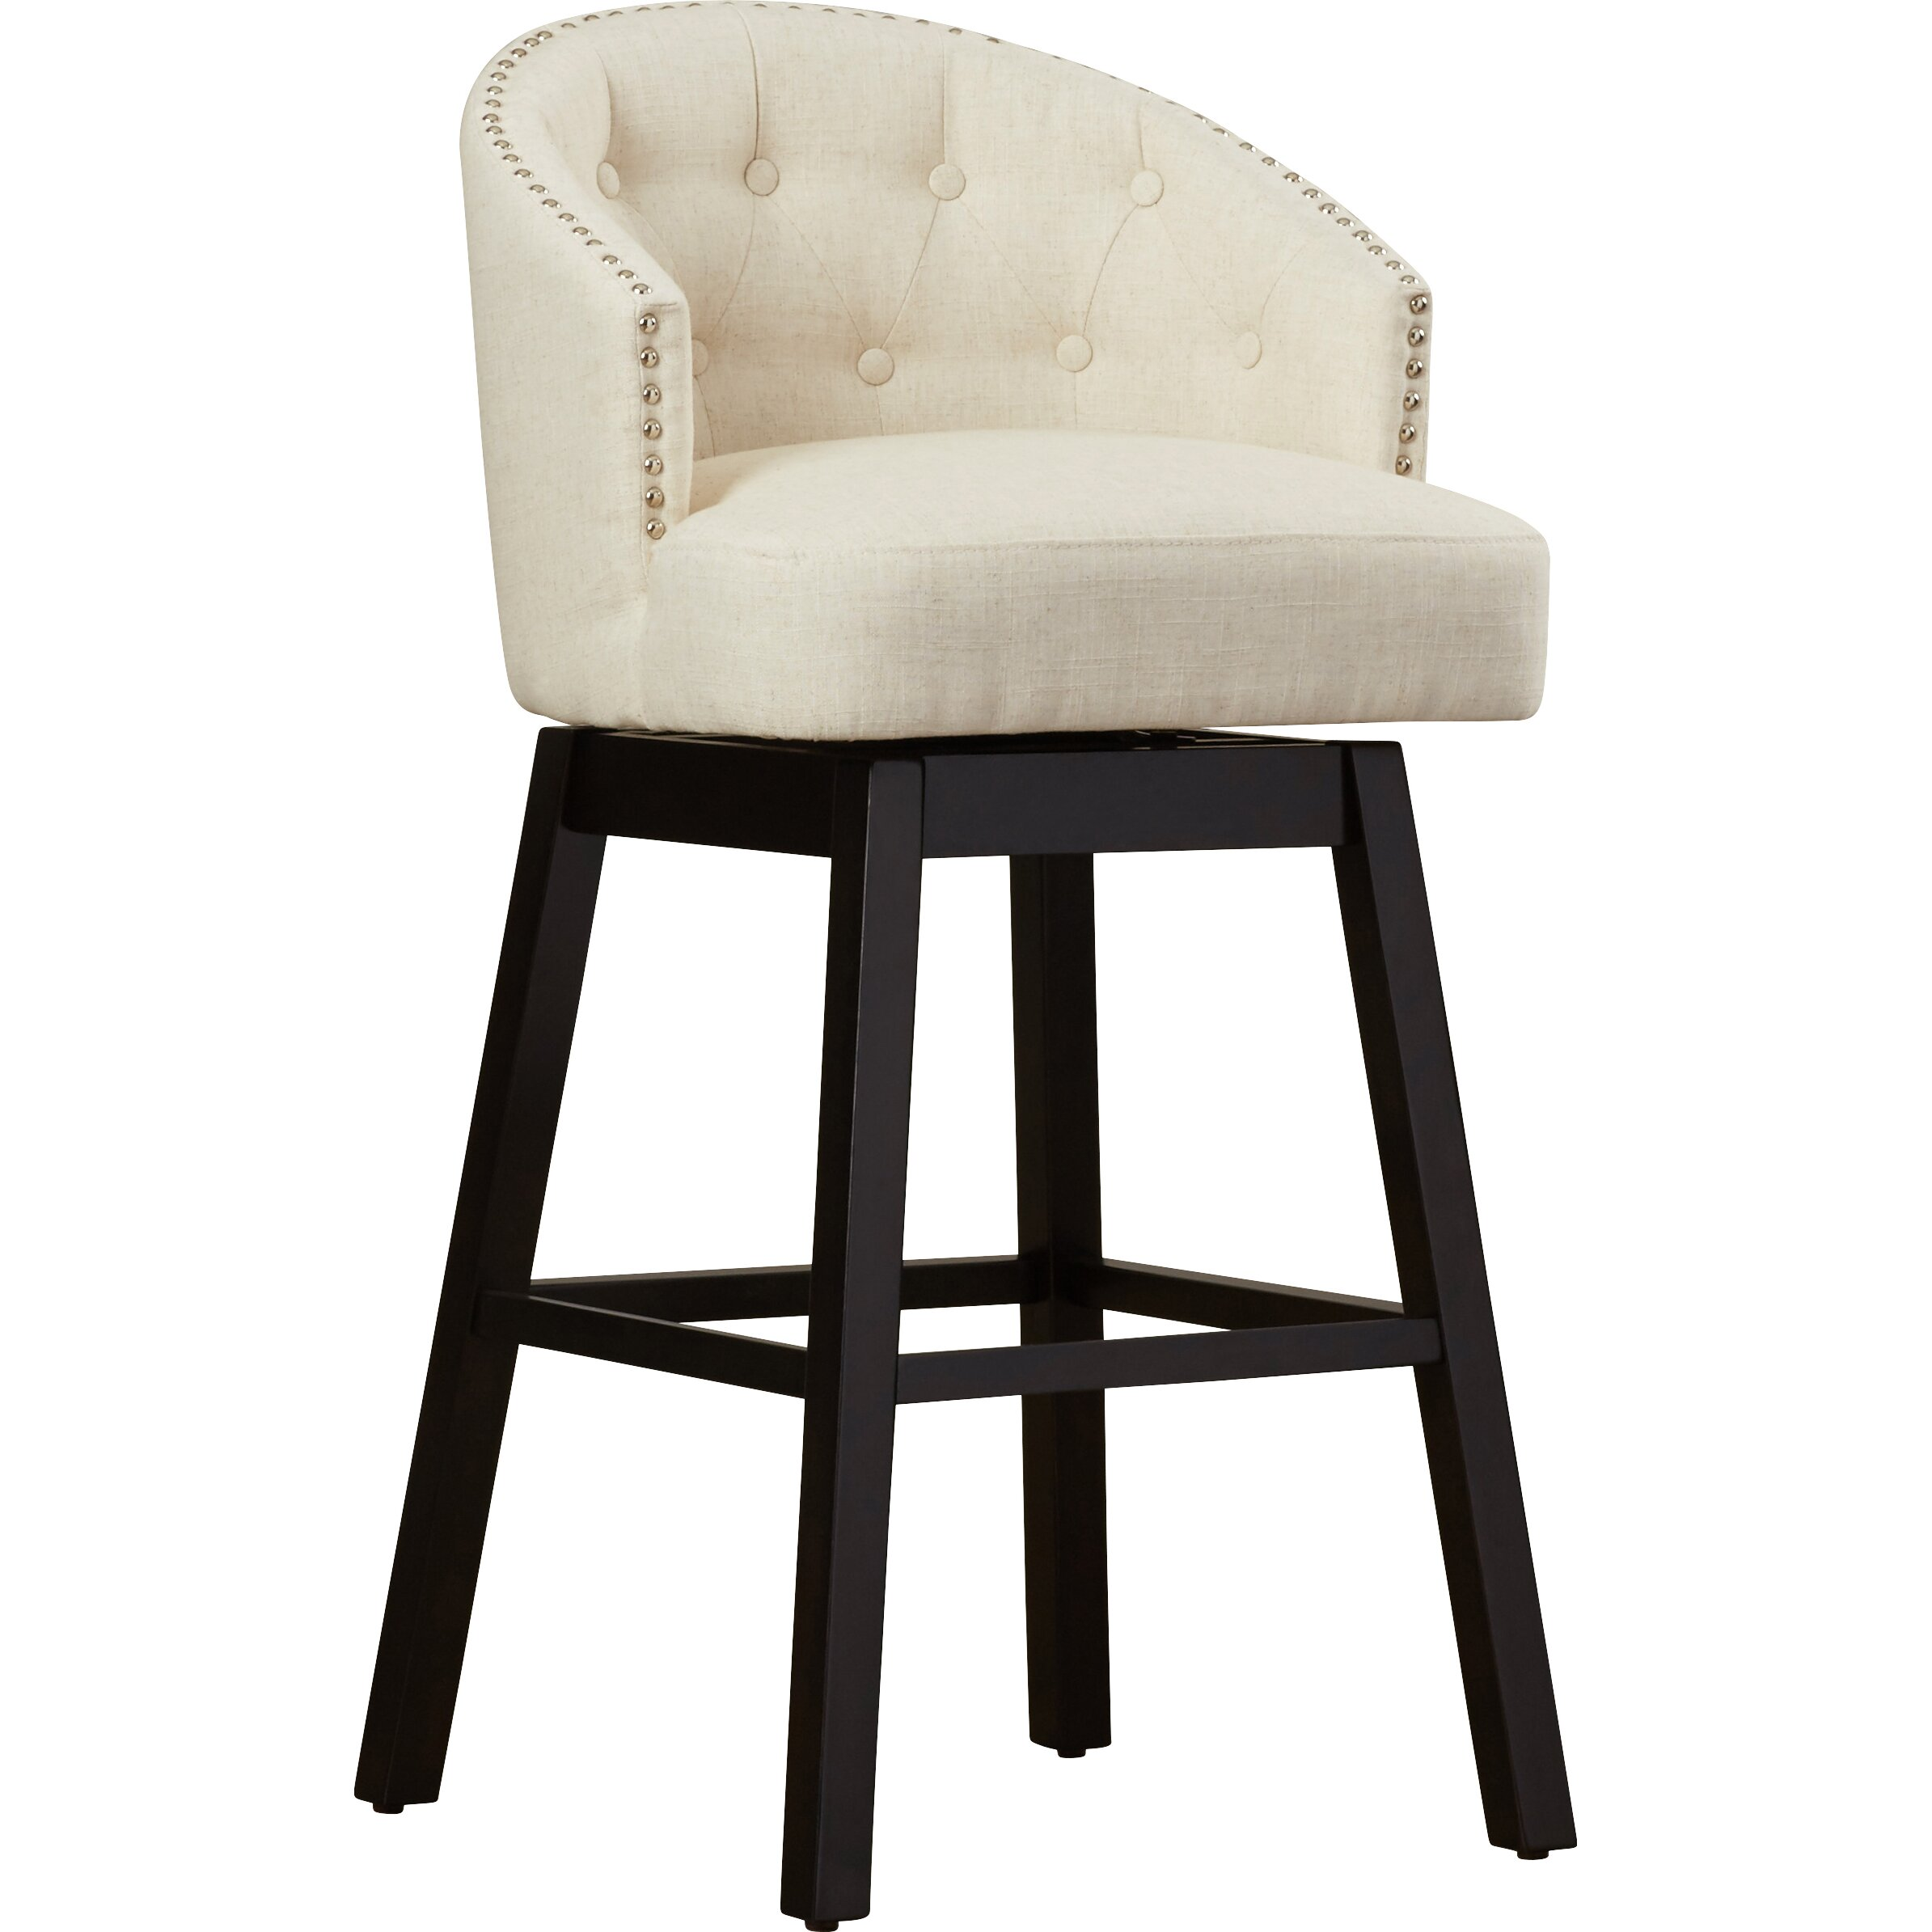 Alcott Hill Farmington 29 Quot Swivel Bar Stool With Cushion